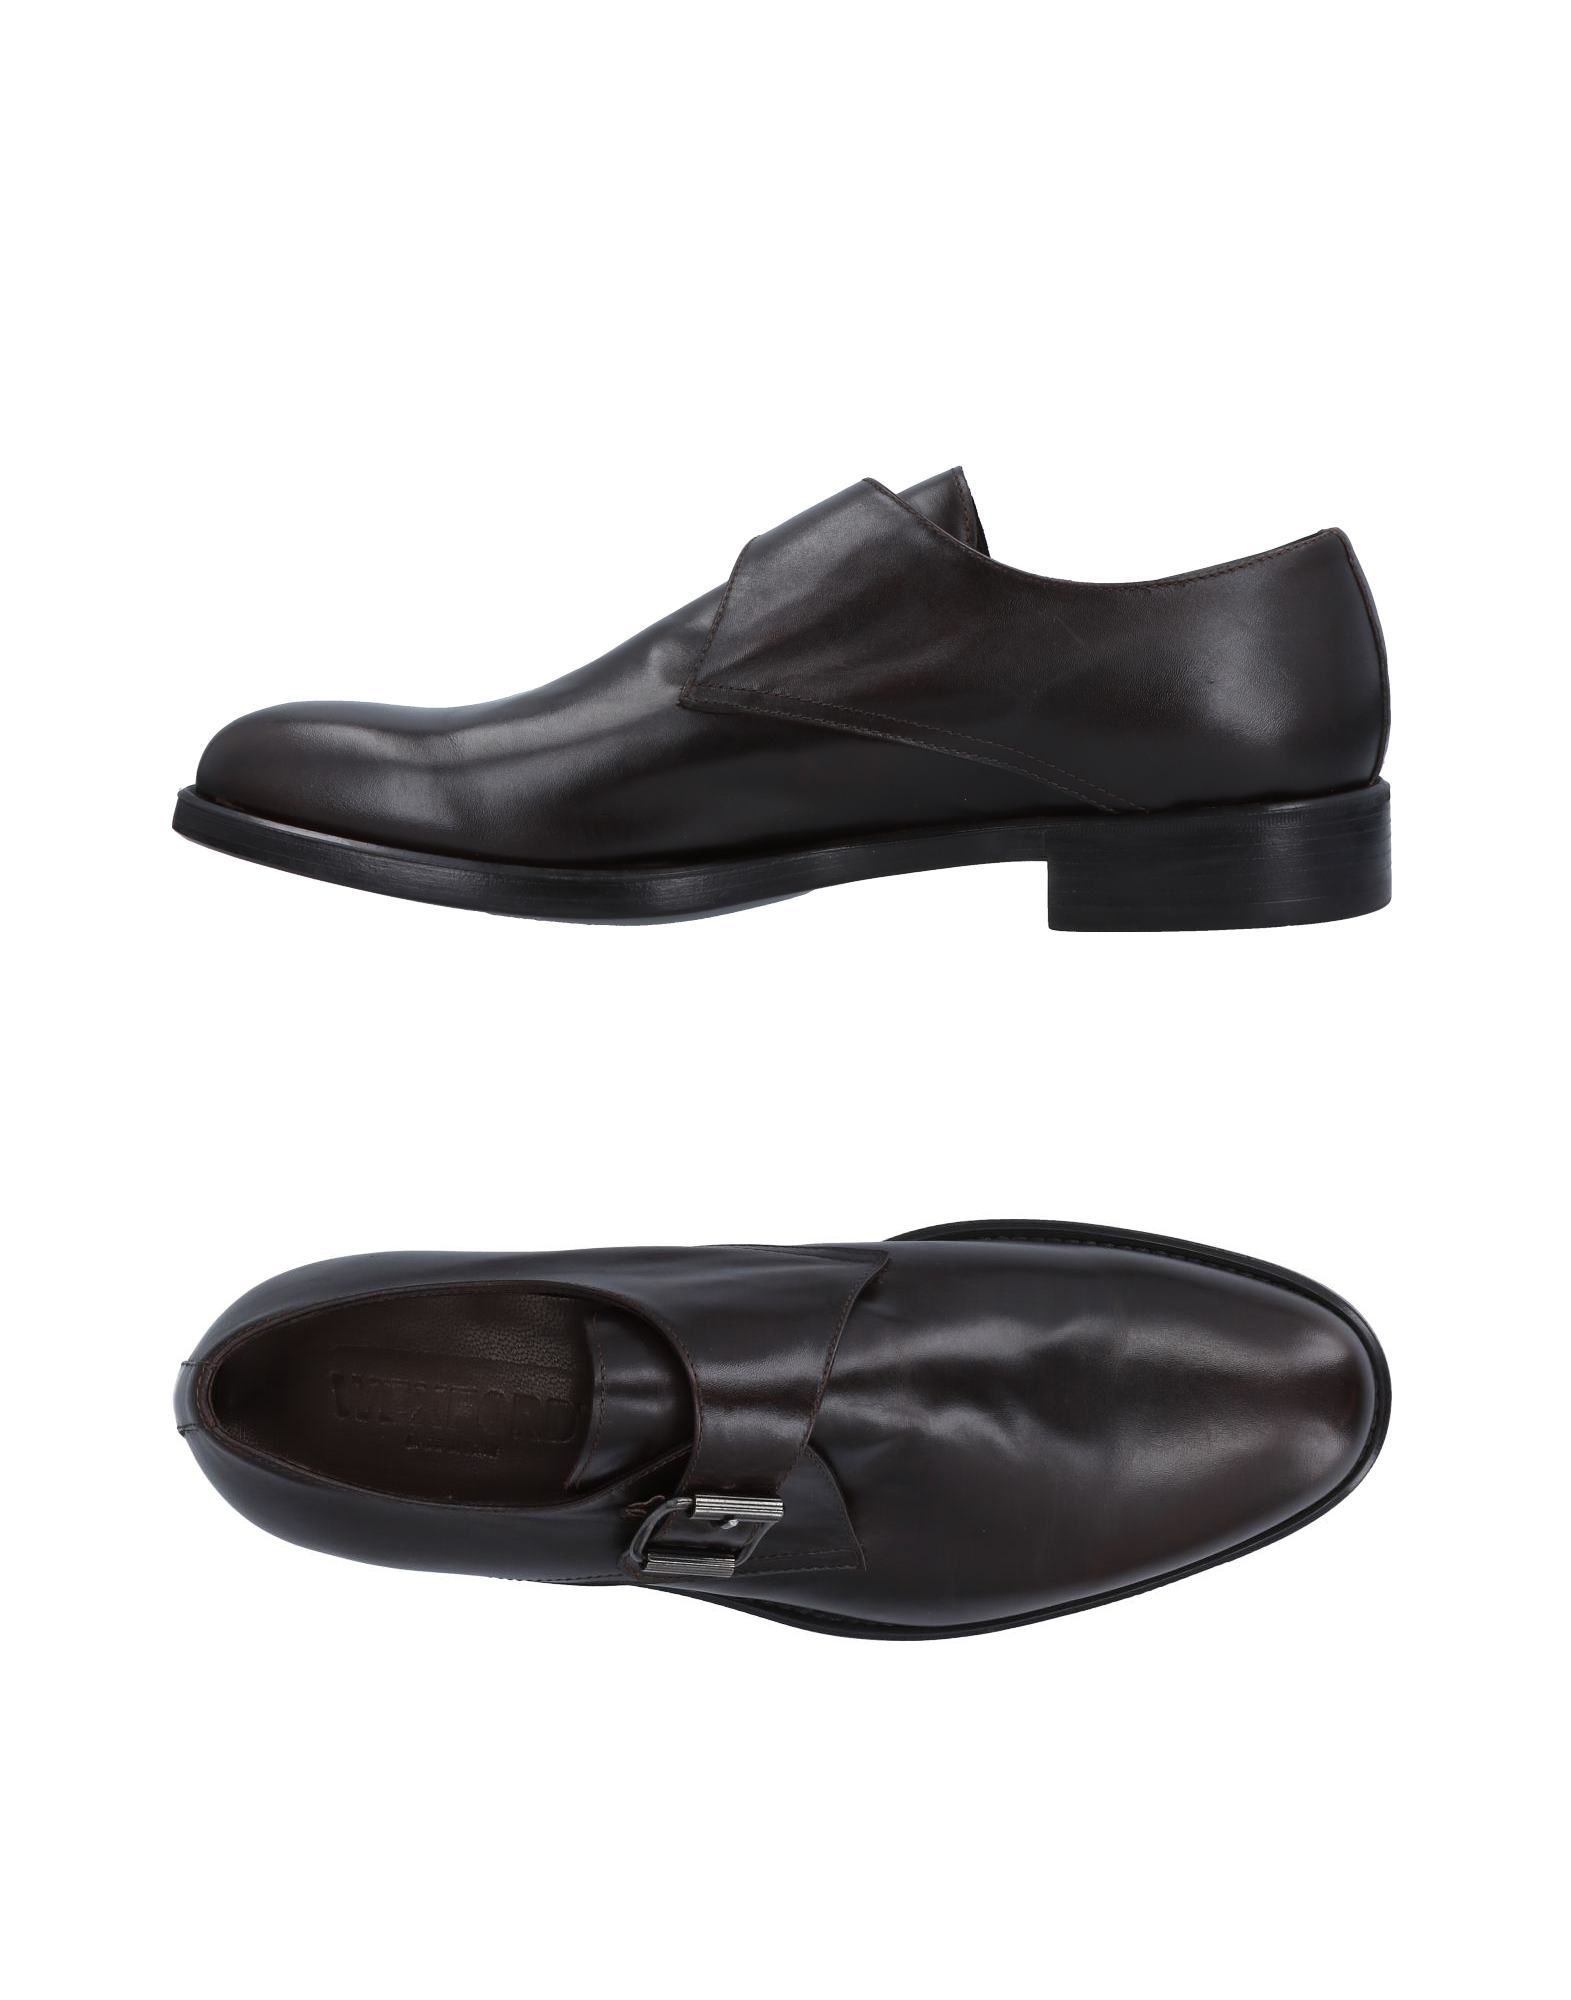 Wexford on Loafers - Men Wexford Loafers online on Wexford  Australia - 11518795TS c5a3a5